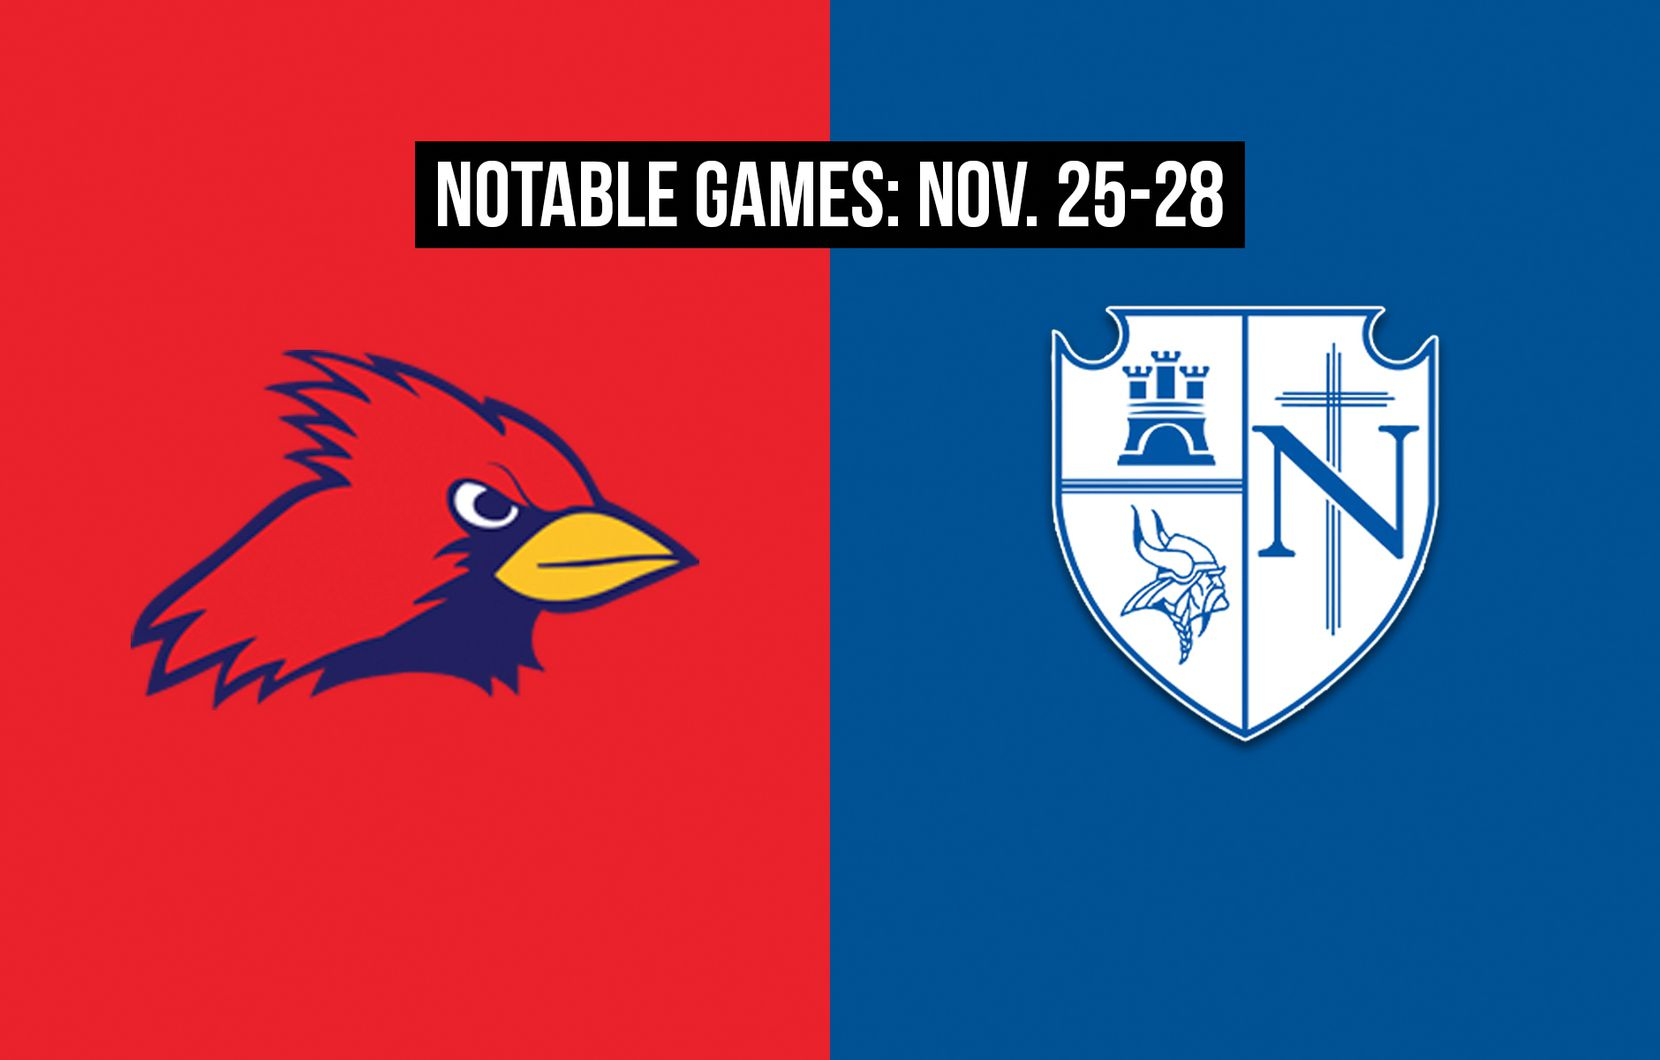 Notable games for the week of Nov. 25-28 of the 2020 season: John Paul II vs. Fort Worth Nolan.